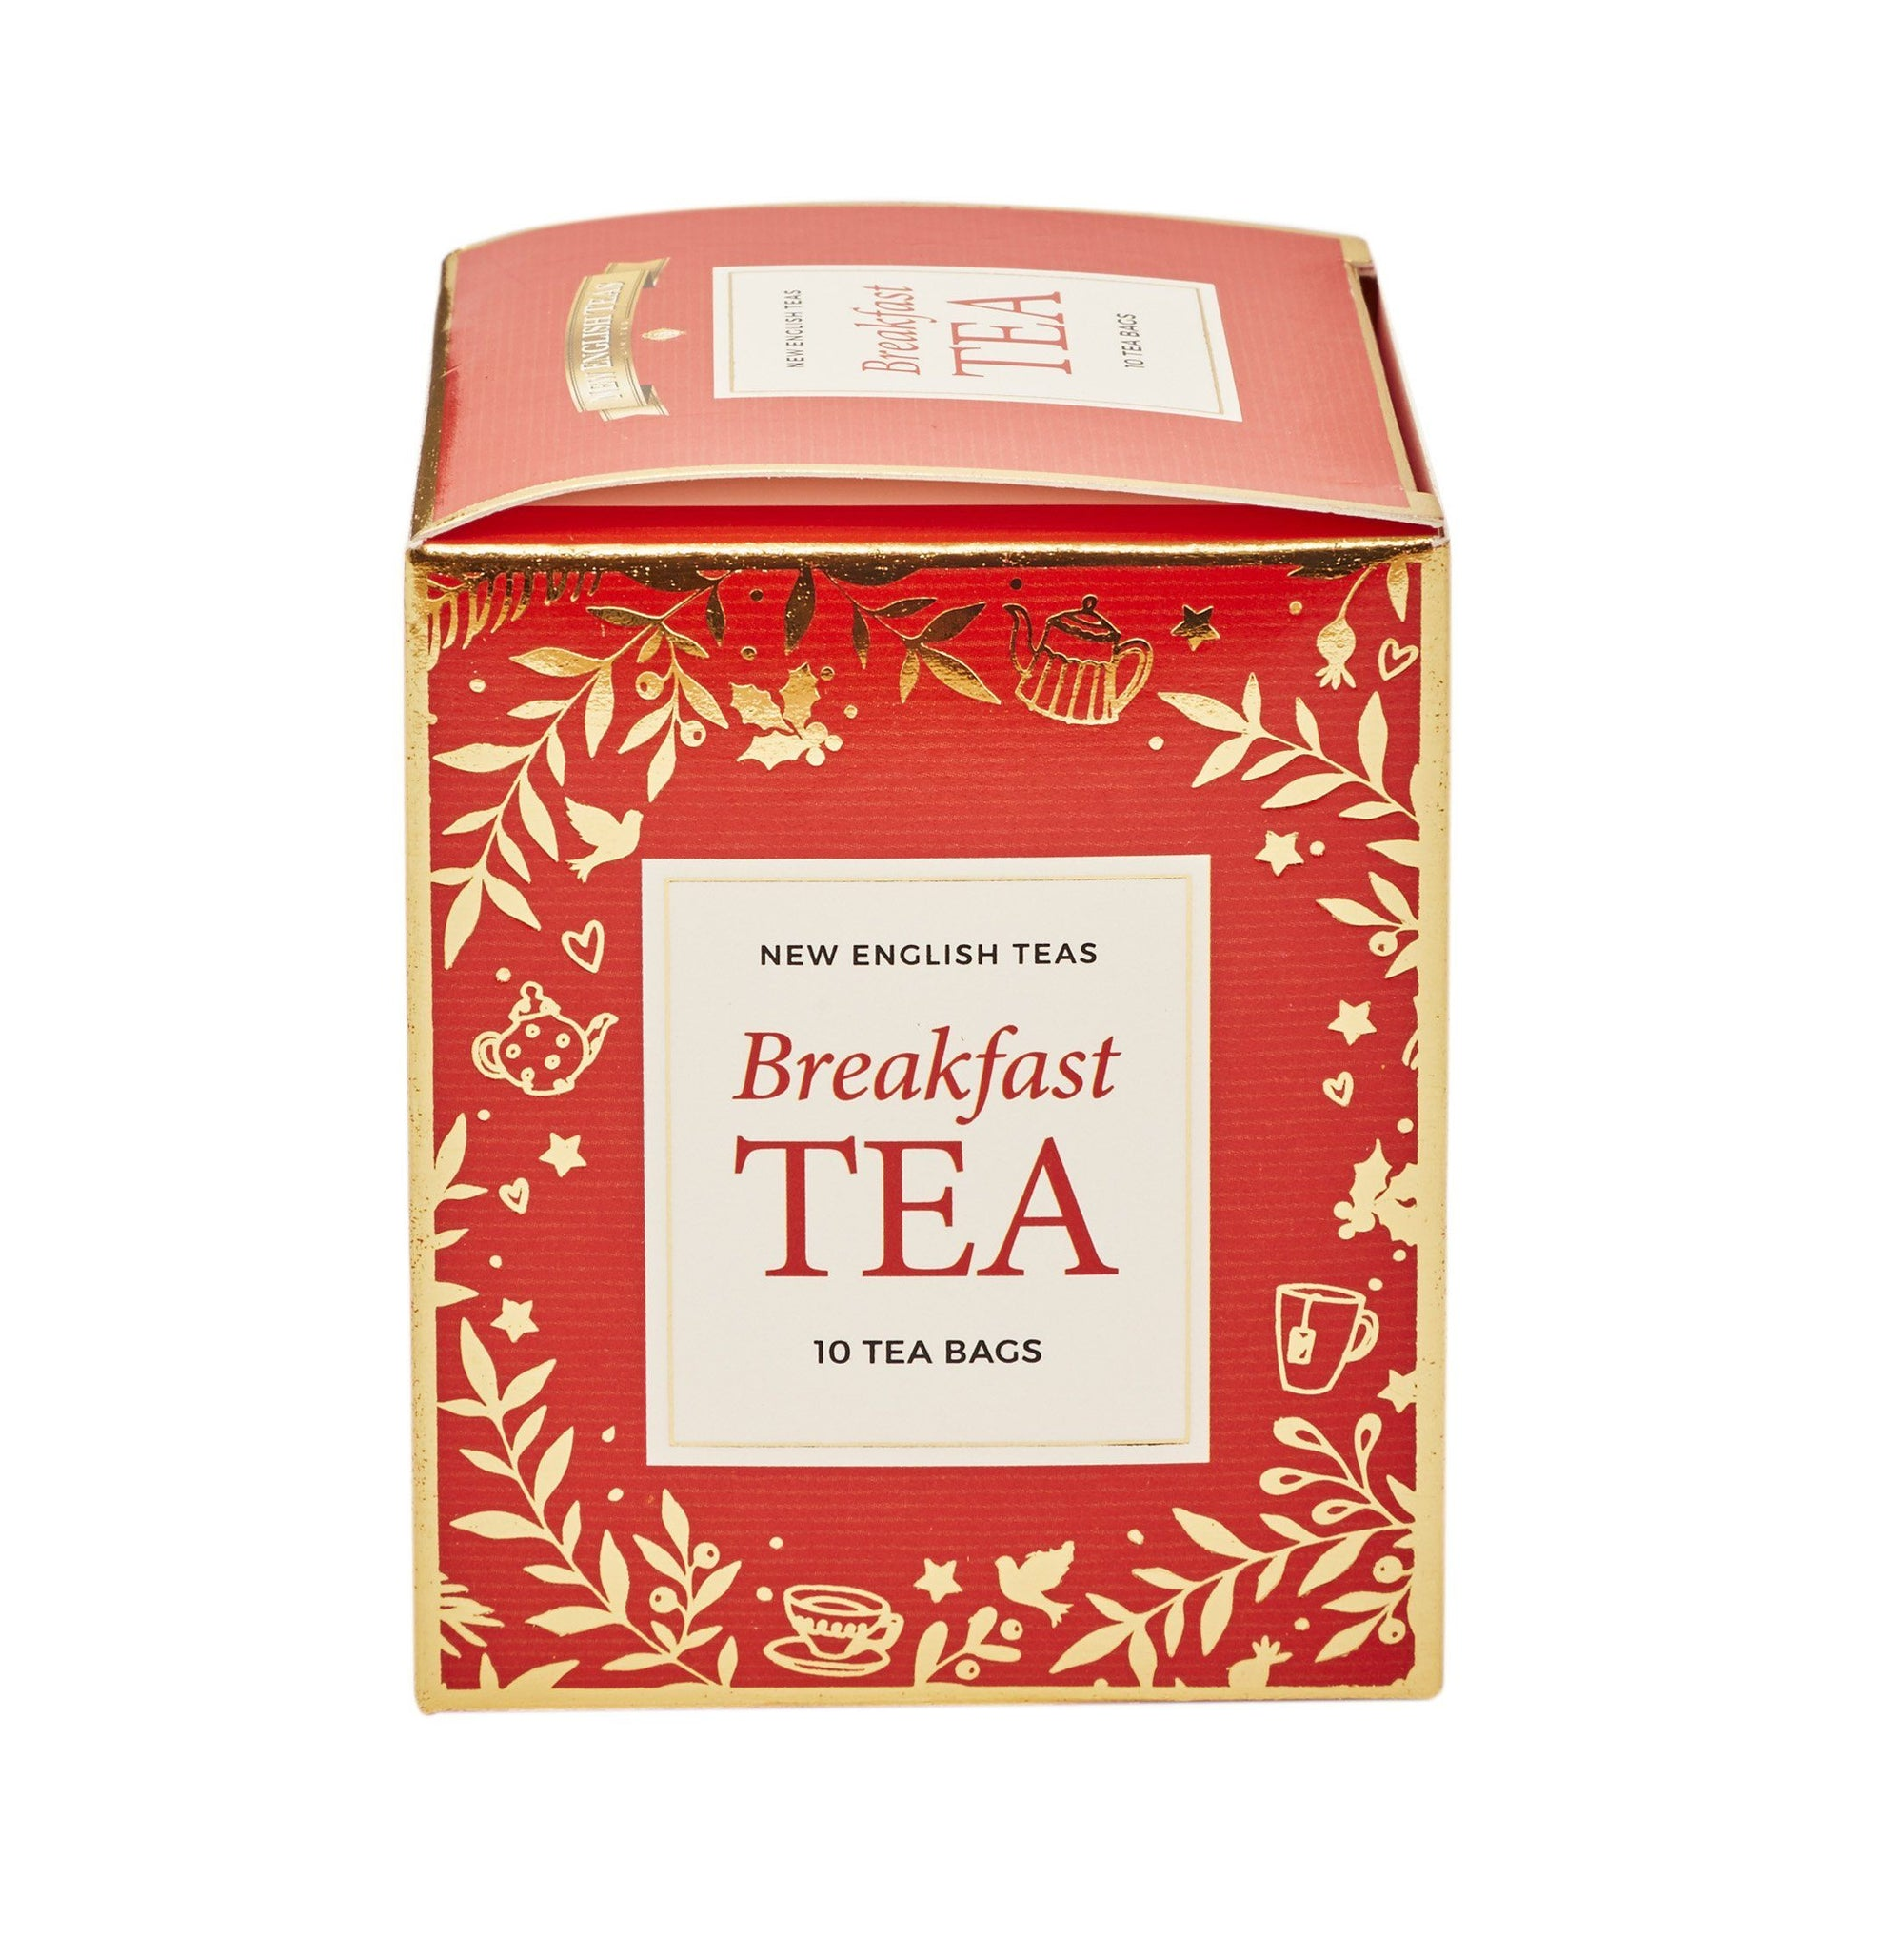 Red Christmas Teabag Box with 10 Breakfast Tea Teabags Black Tea New English Teas